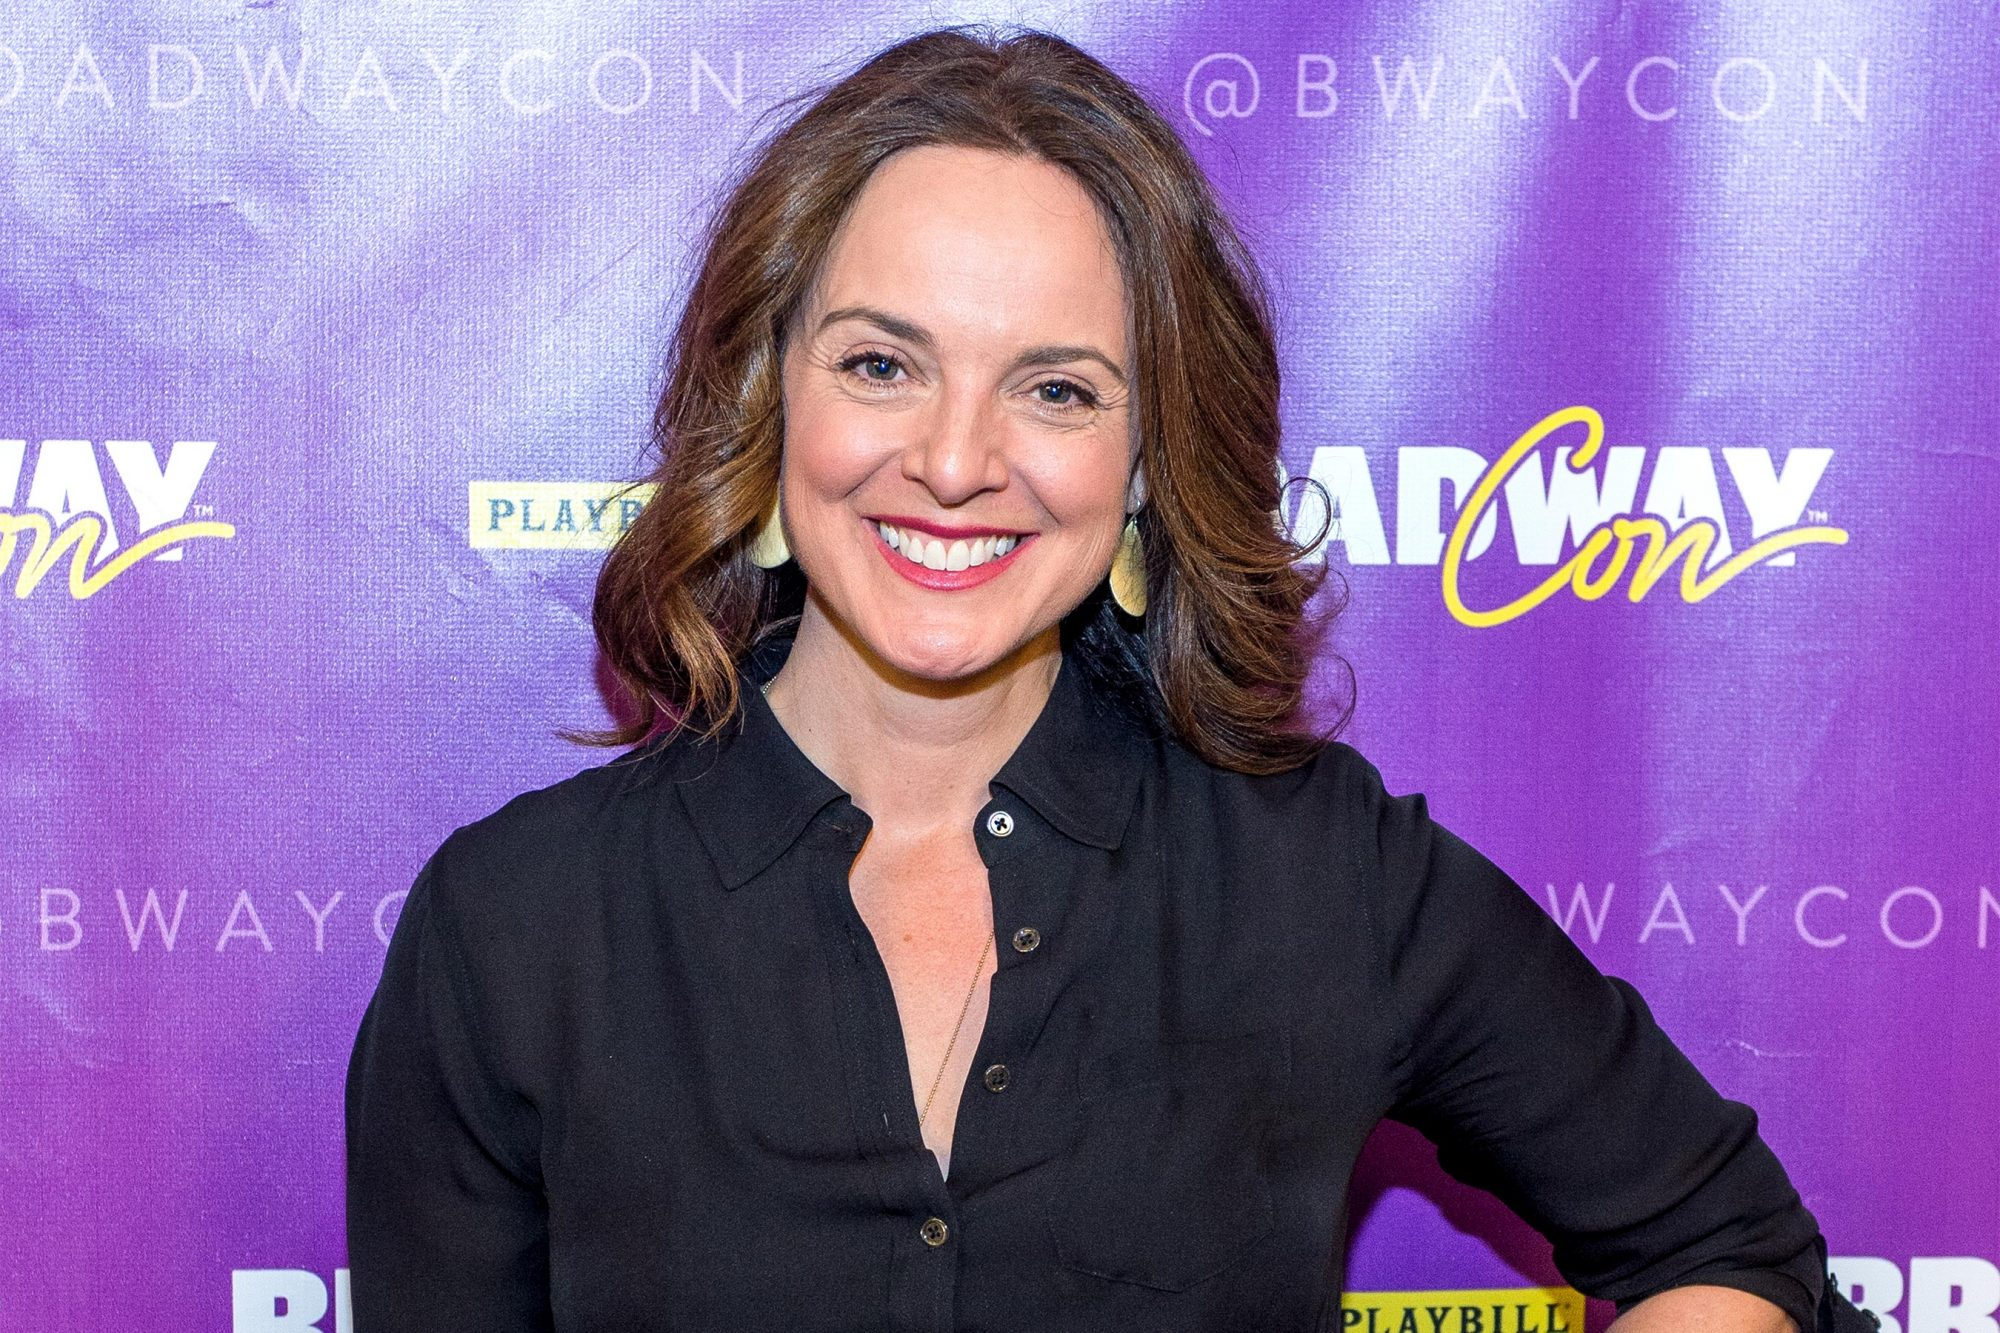 NEW YORK, NY - JANUARY 22: Actress Melissa Errico attends BroadwayCon 2016 at New York Hilton Midtown on January 22, 2016 in New York City. (Photo by Roy Rochlin/Getty Images)